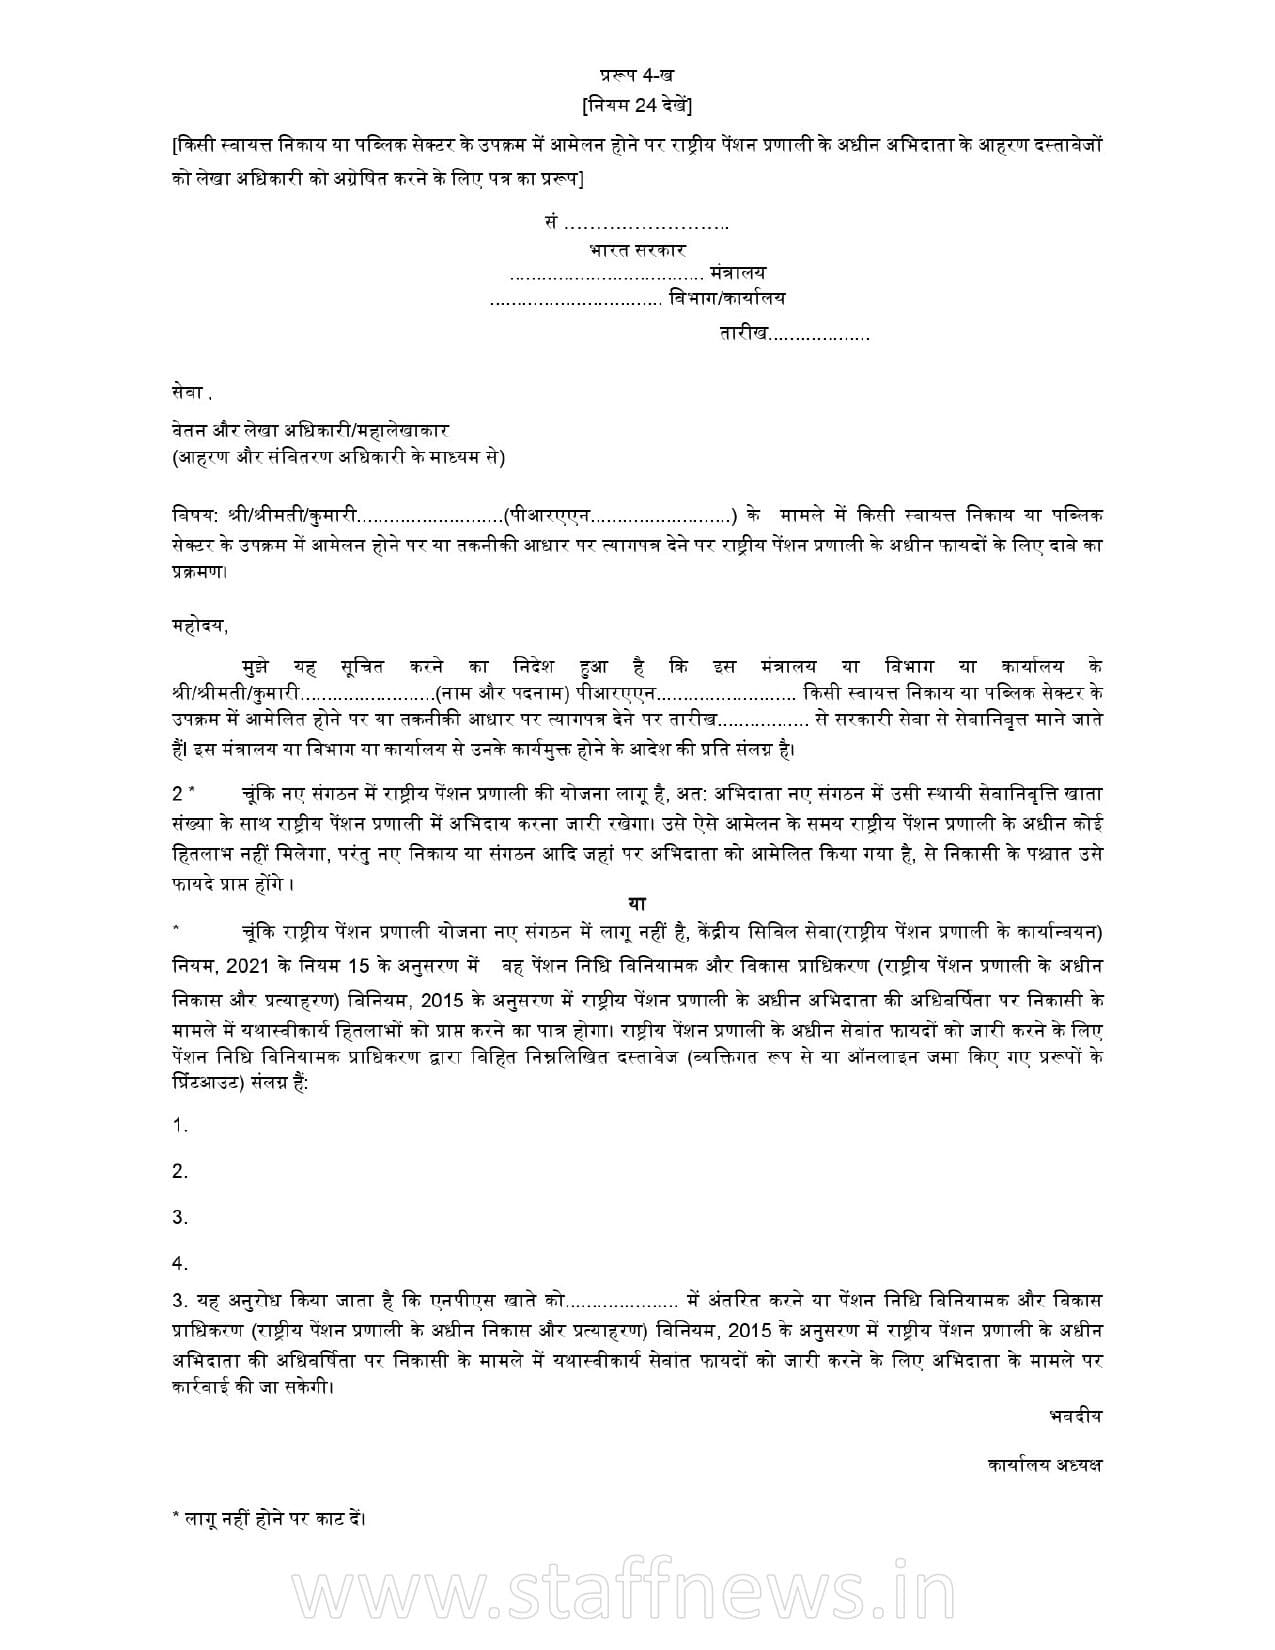 Form 4-B CCS (NPS) Rules, 2021: Form of letter to forward the withdrawal papers of Subscribers on absorption in an autonomous body or PSU